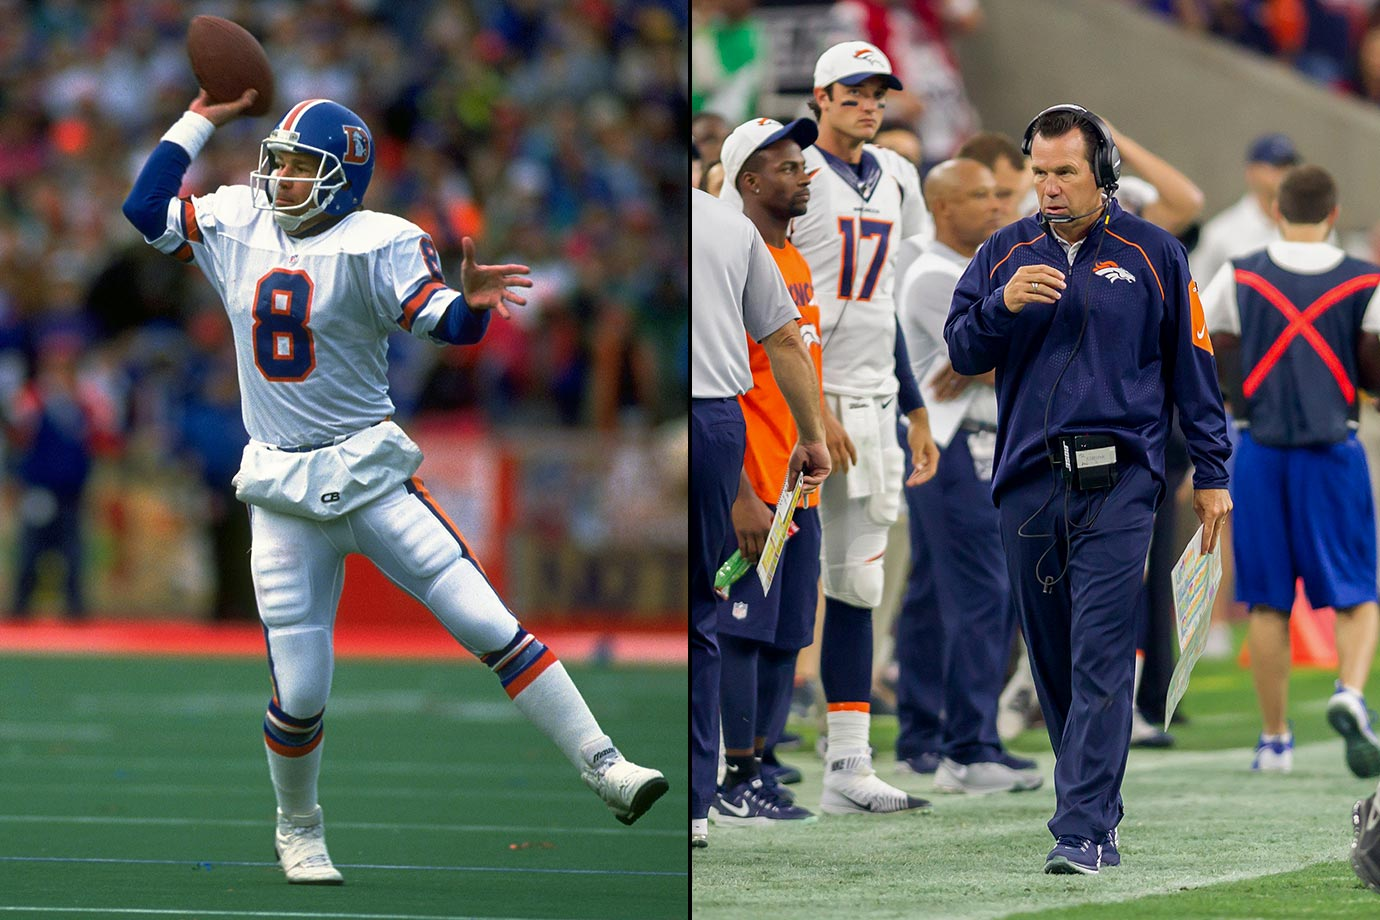 Drafted by the Broncos in the eighth round of the 1983 NFL draft, Gary Kubiak served as John Elway's backup for his entire career. After Kubiak retired, it seemed like his coaching career would follow a similar pattern. He served as the offense coordinator in Denver for 11 years, but in 2006 he was named the second head coach in Houston Texans history. On Dec. 6, 2013, Kubiak was fired after eight years in Houston (61-64), but Denver brought him back home when he signed a four-year deal to become their head coach in 2015. Kubiak's Broncos went on to win Super Bowl 50, 24-10 over the Panthers.